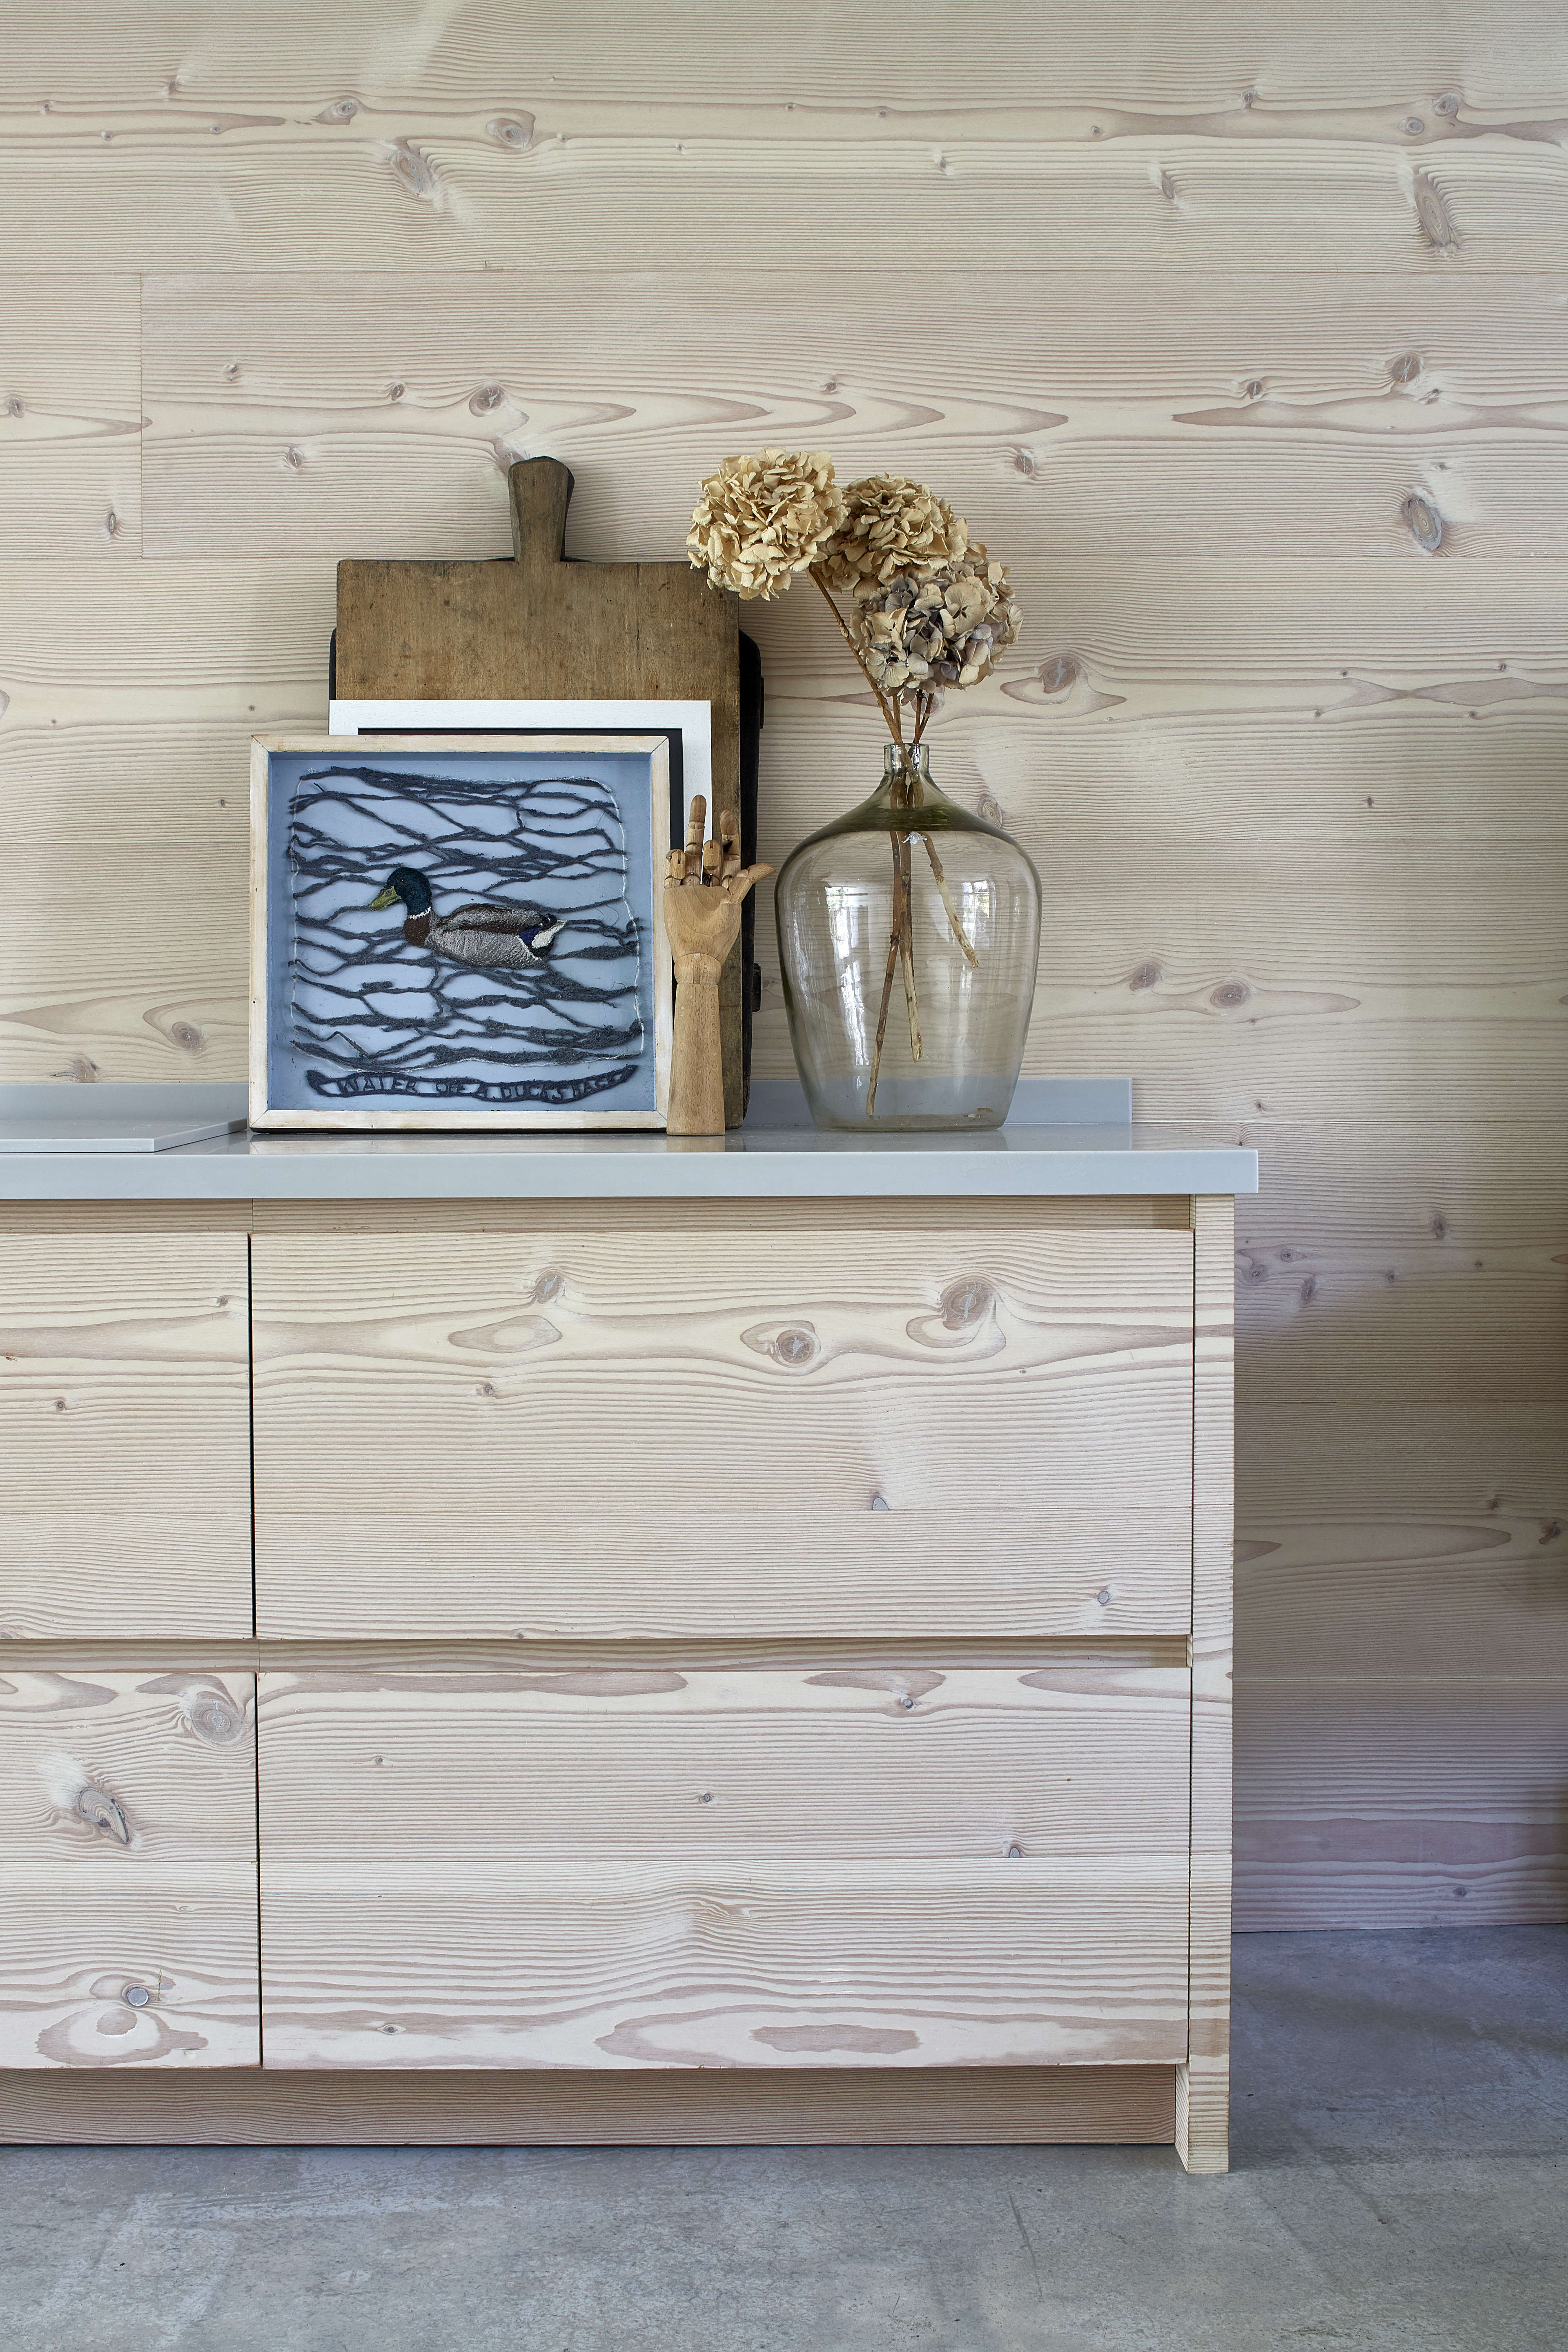 dougls fir cabinets and wall paneling—and an artful countertop display—in a 14